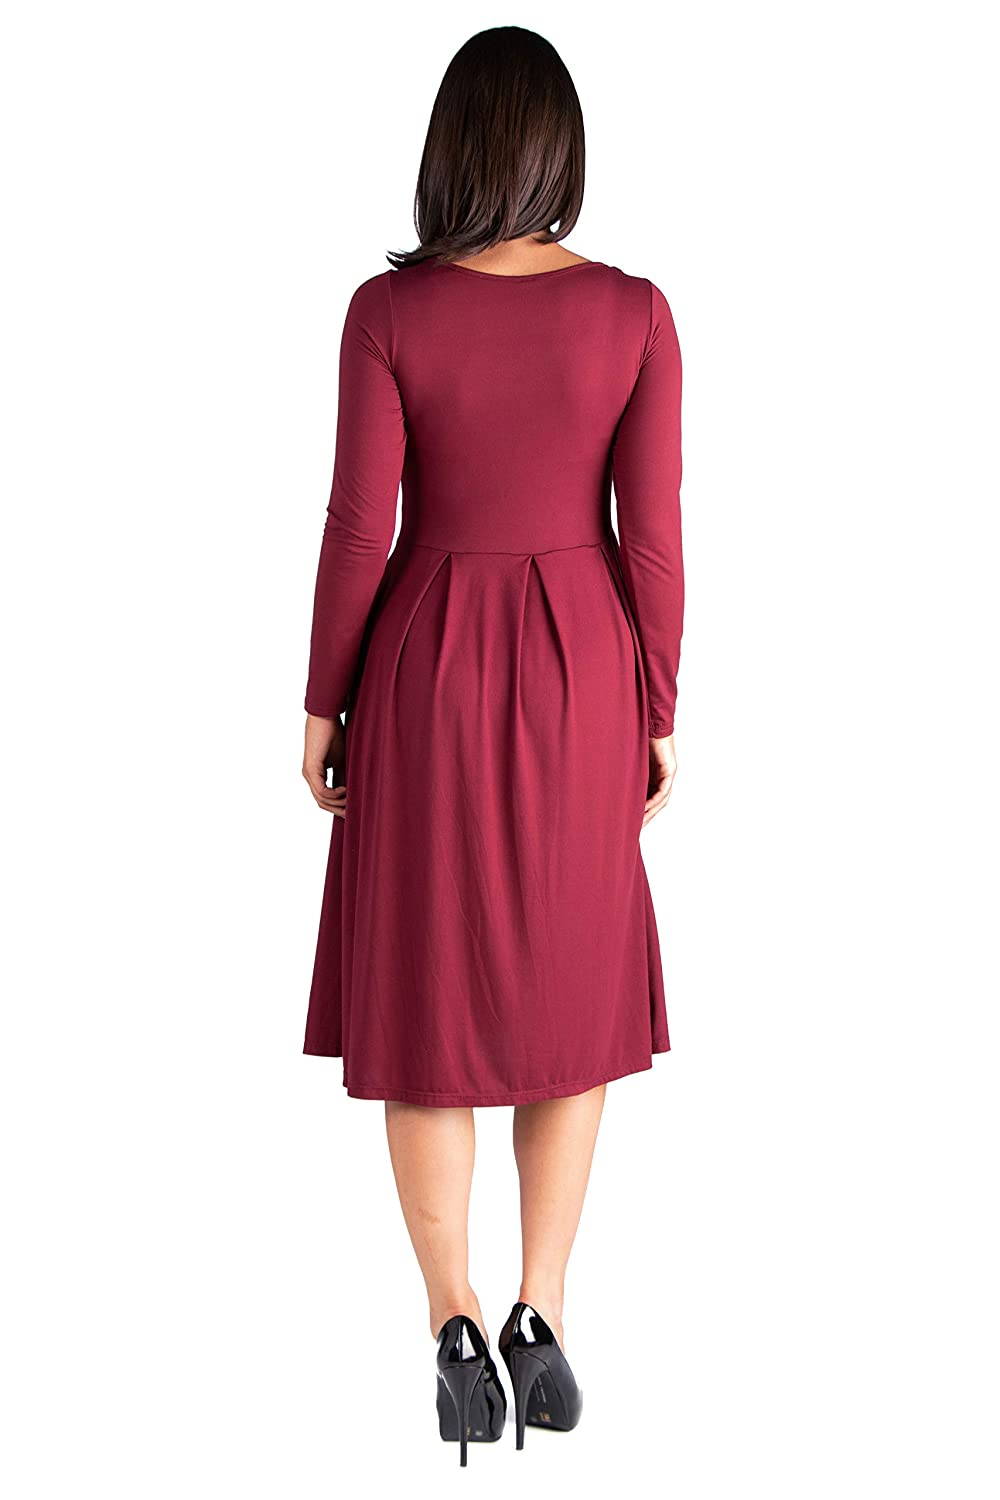 5546695432b 24seven Comfort Apparel Maternity Clothes for Women Long Sleeve Fit Flare Midi  Dress Pockets - Made in USA - (Sizes S-3XL) at Amazon Women s Clothing  store